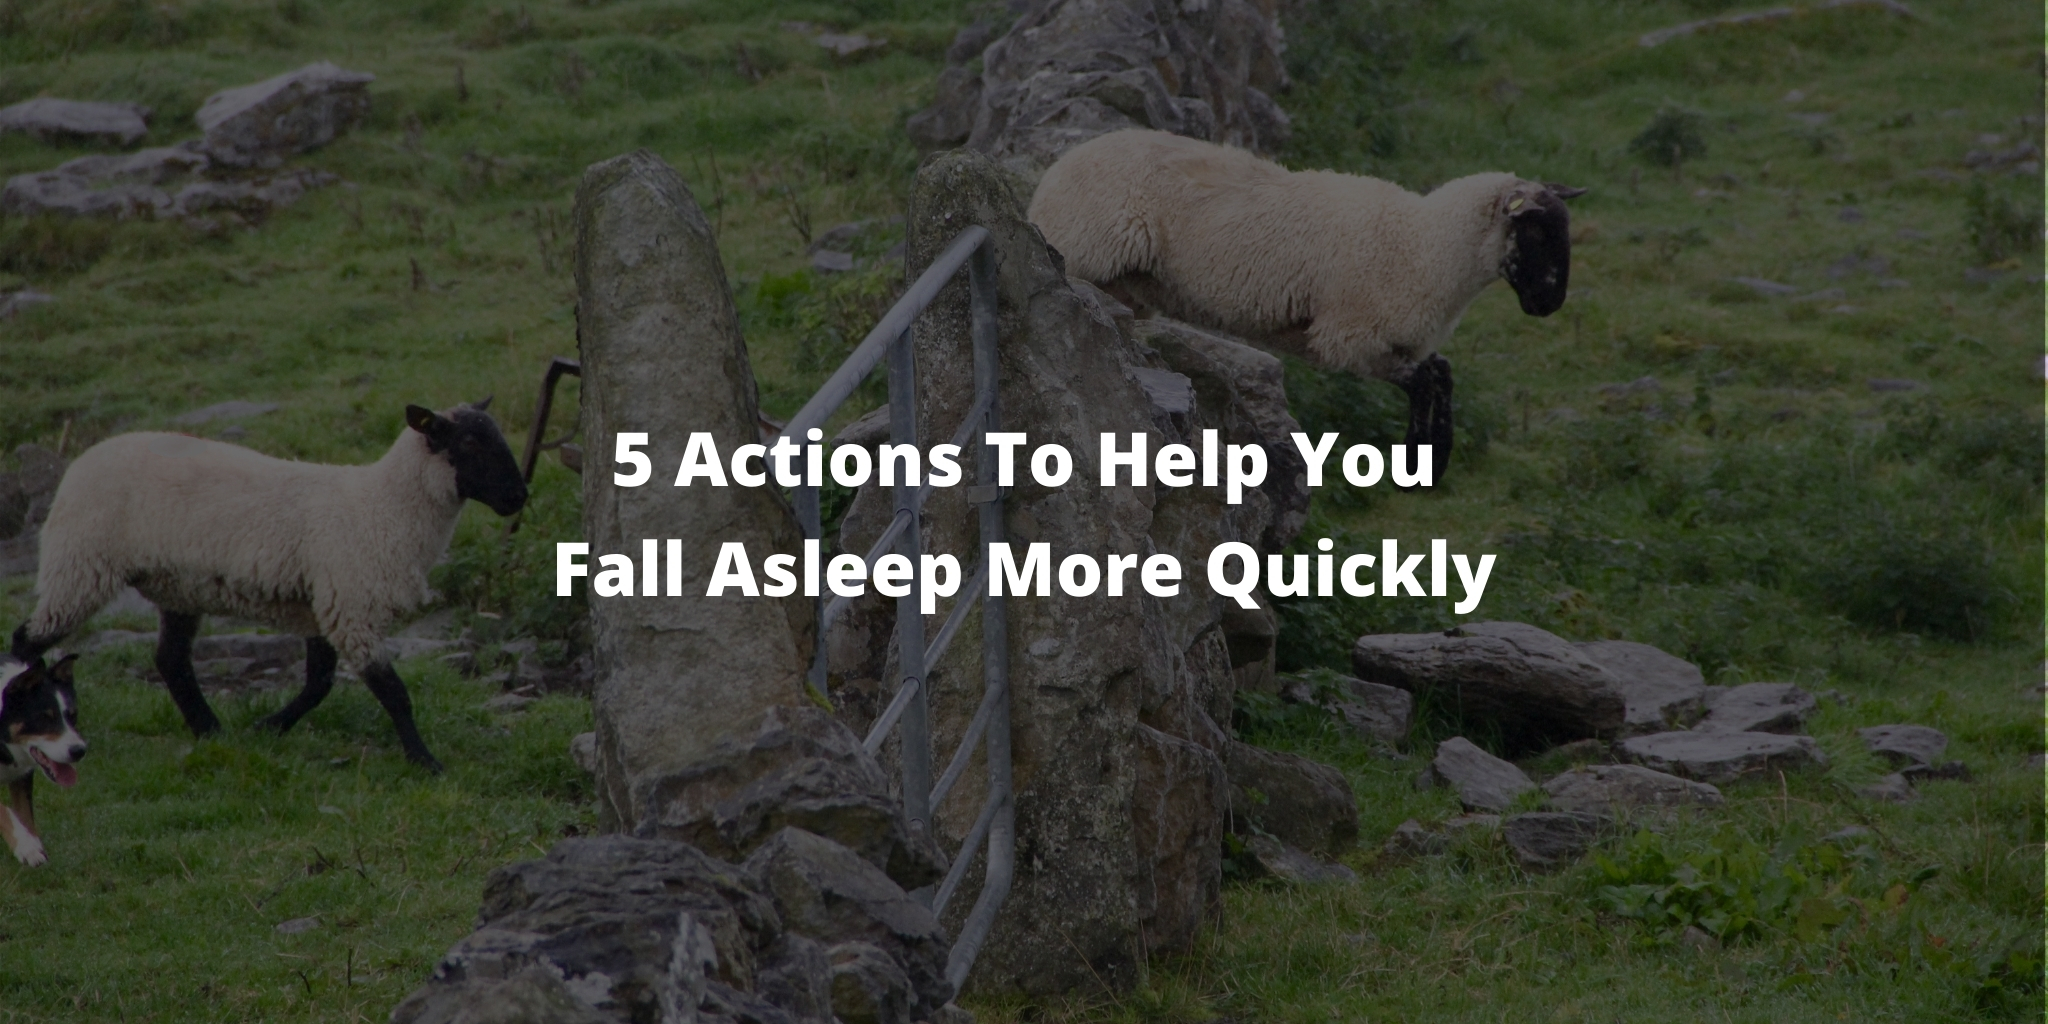 5 Actions To Help You Fall Asleep More Quickly